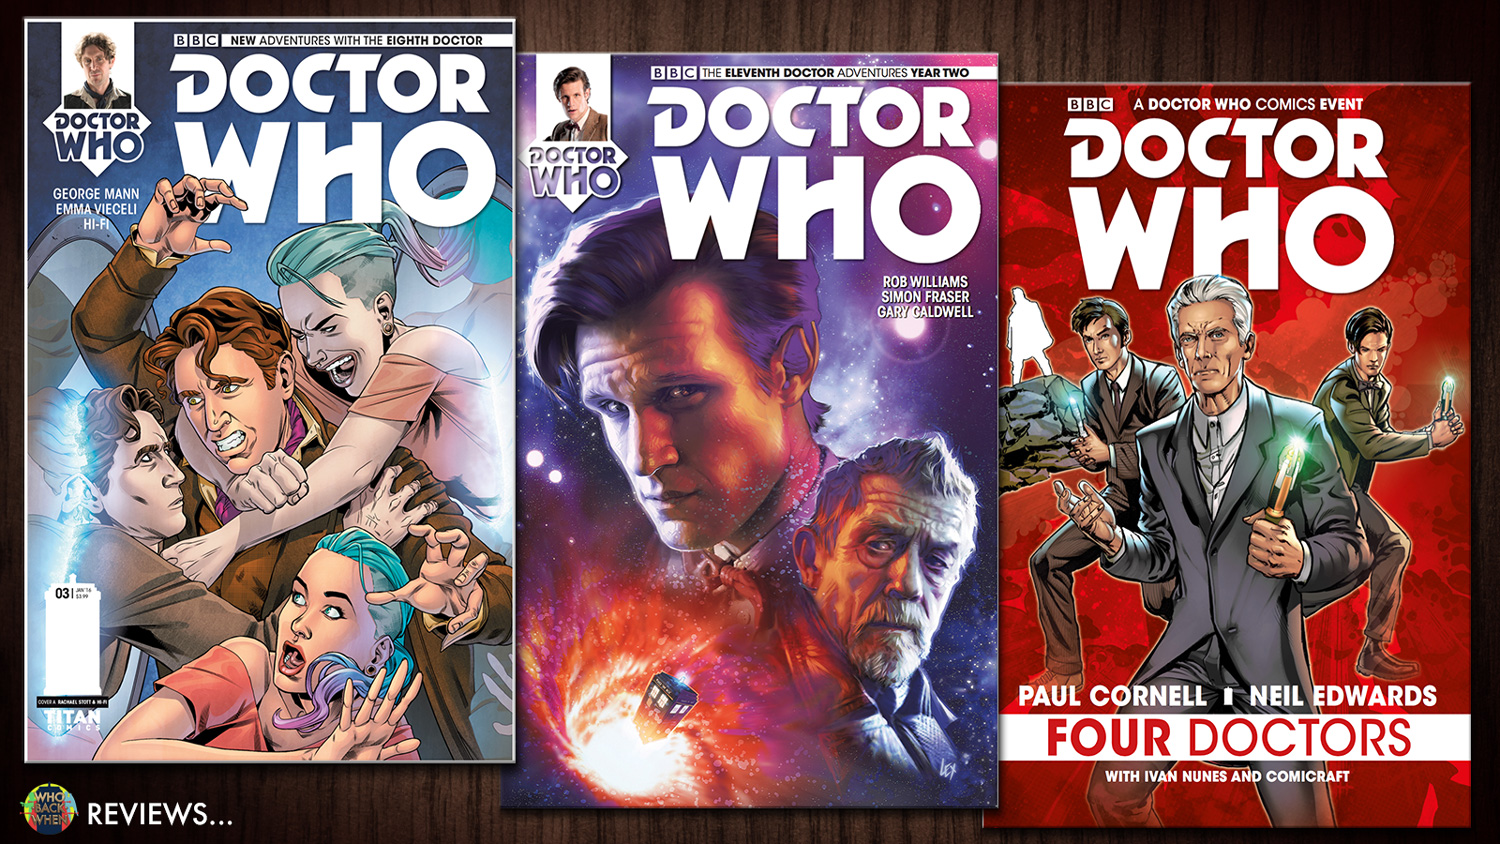 doctor-who-back-when-dr-who-comic-book-covers